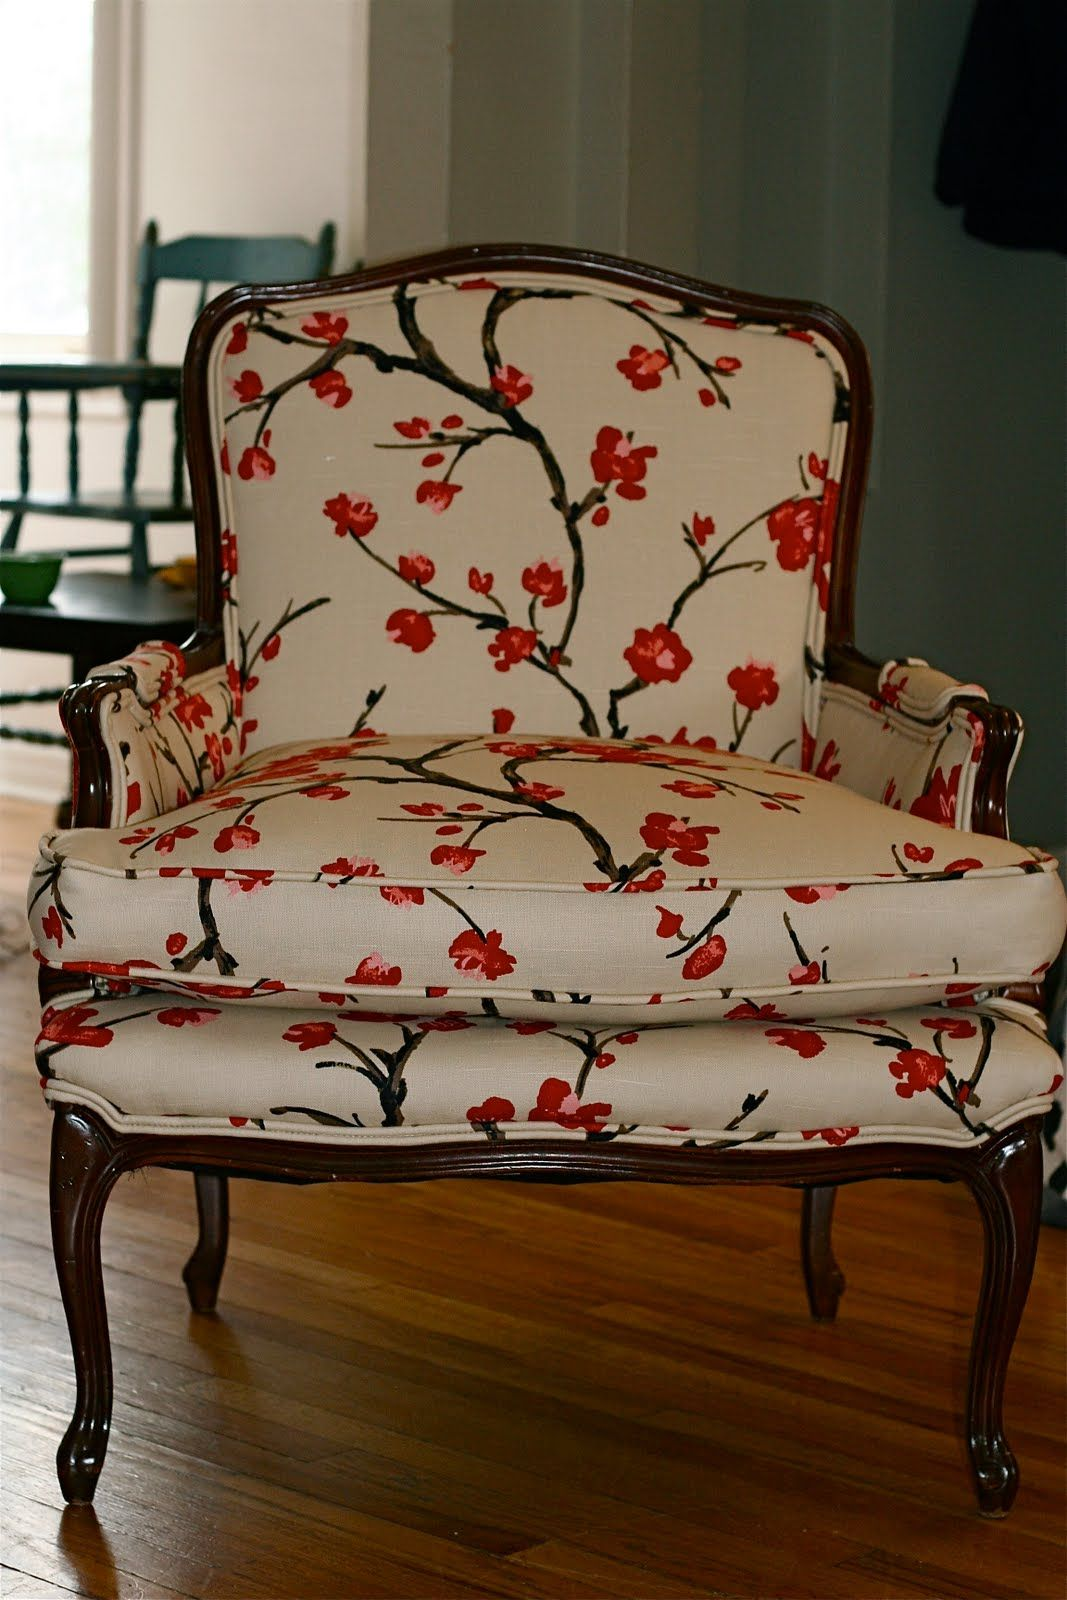 We Cover Chairs In Cherry Blossom Fabric At Least Some Do